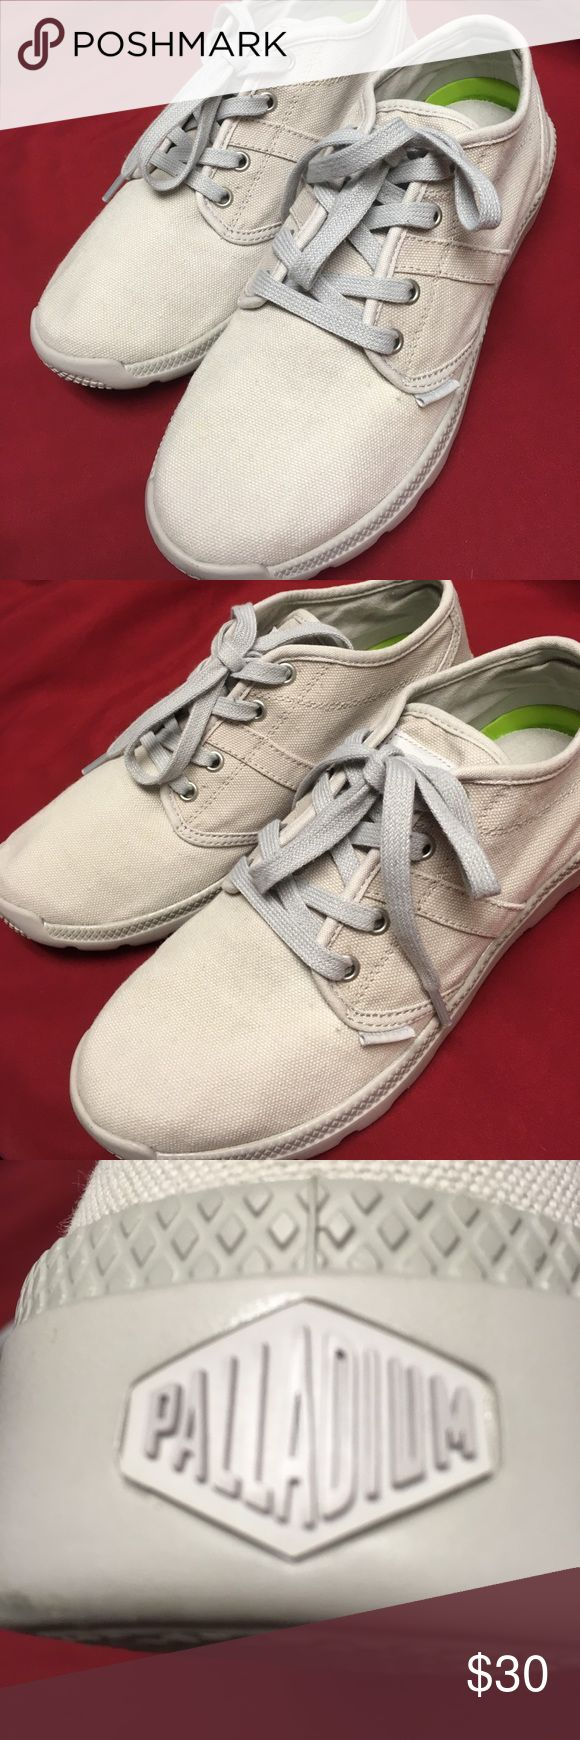 Palladium original canvas size 9 color gray Palladium bran New shoes canvas size 9 never worn color gray Palladium Shoes Sneakers